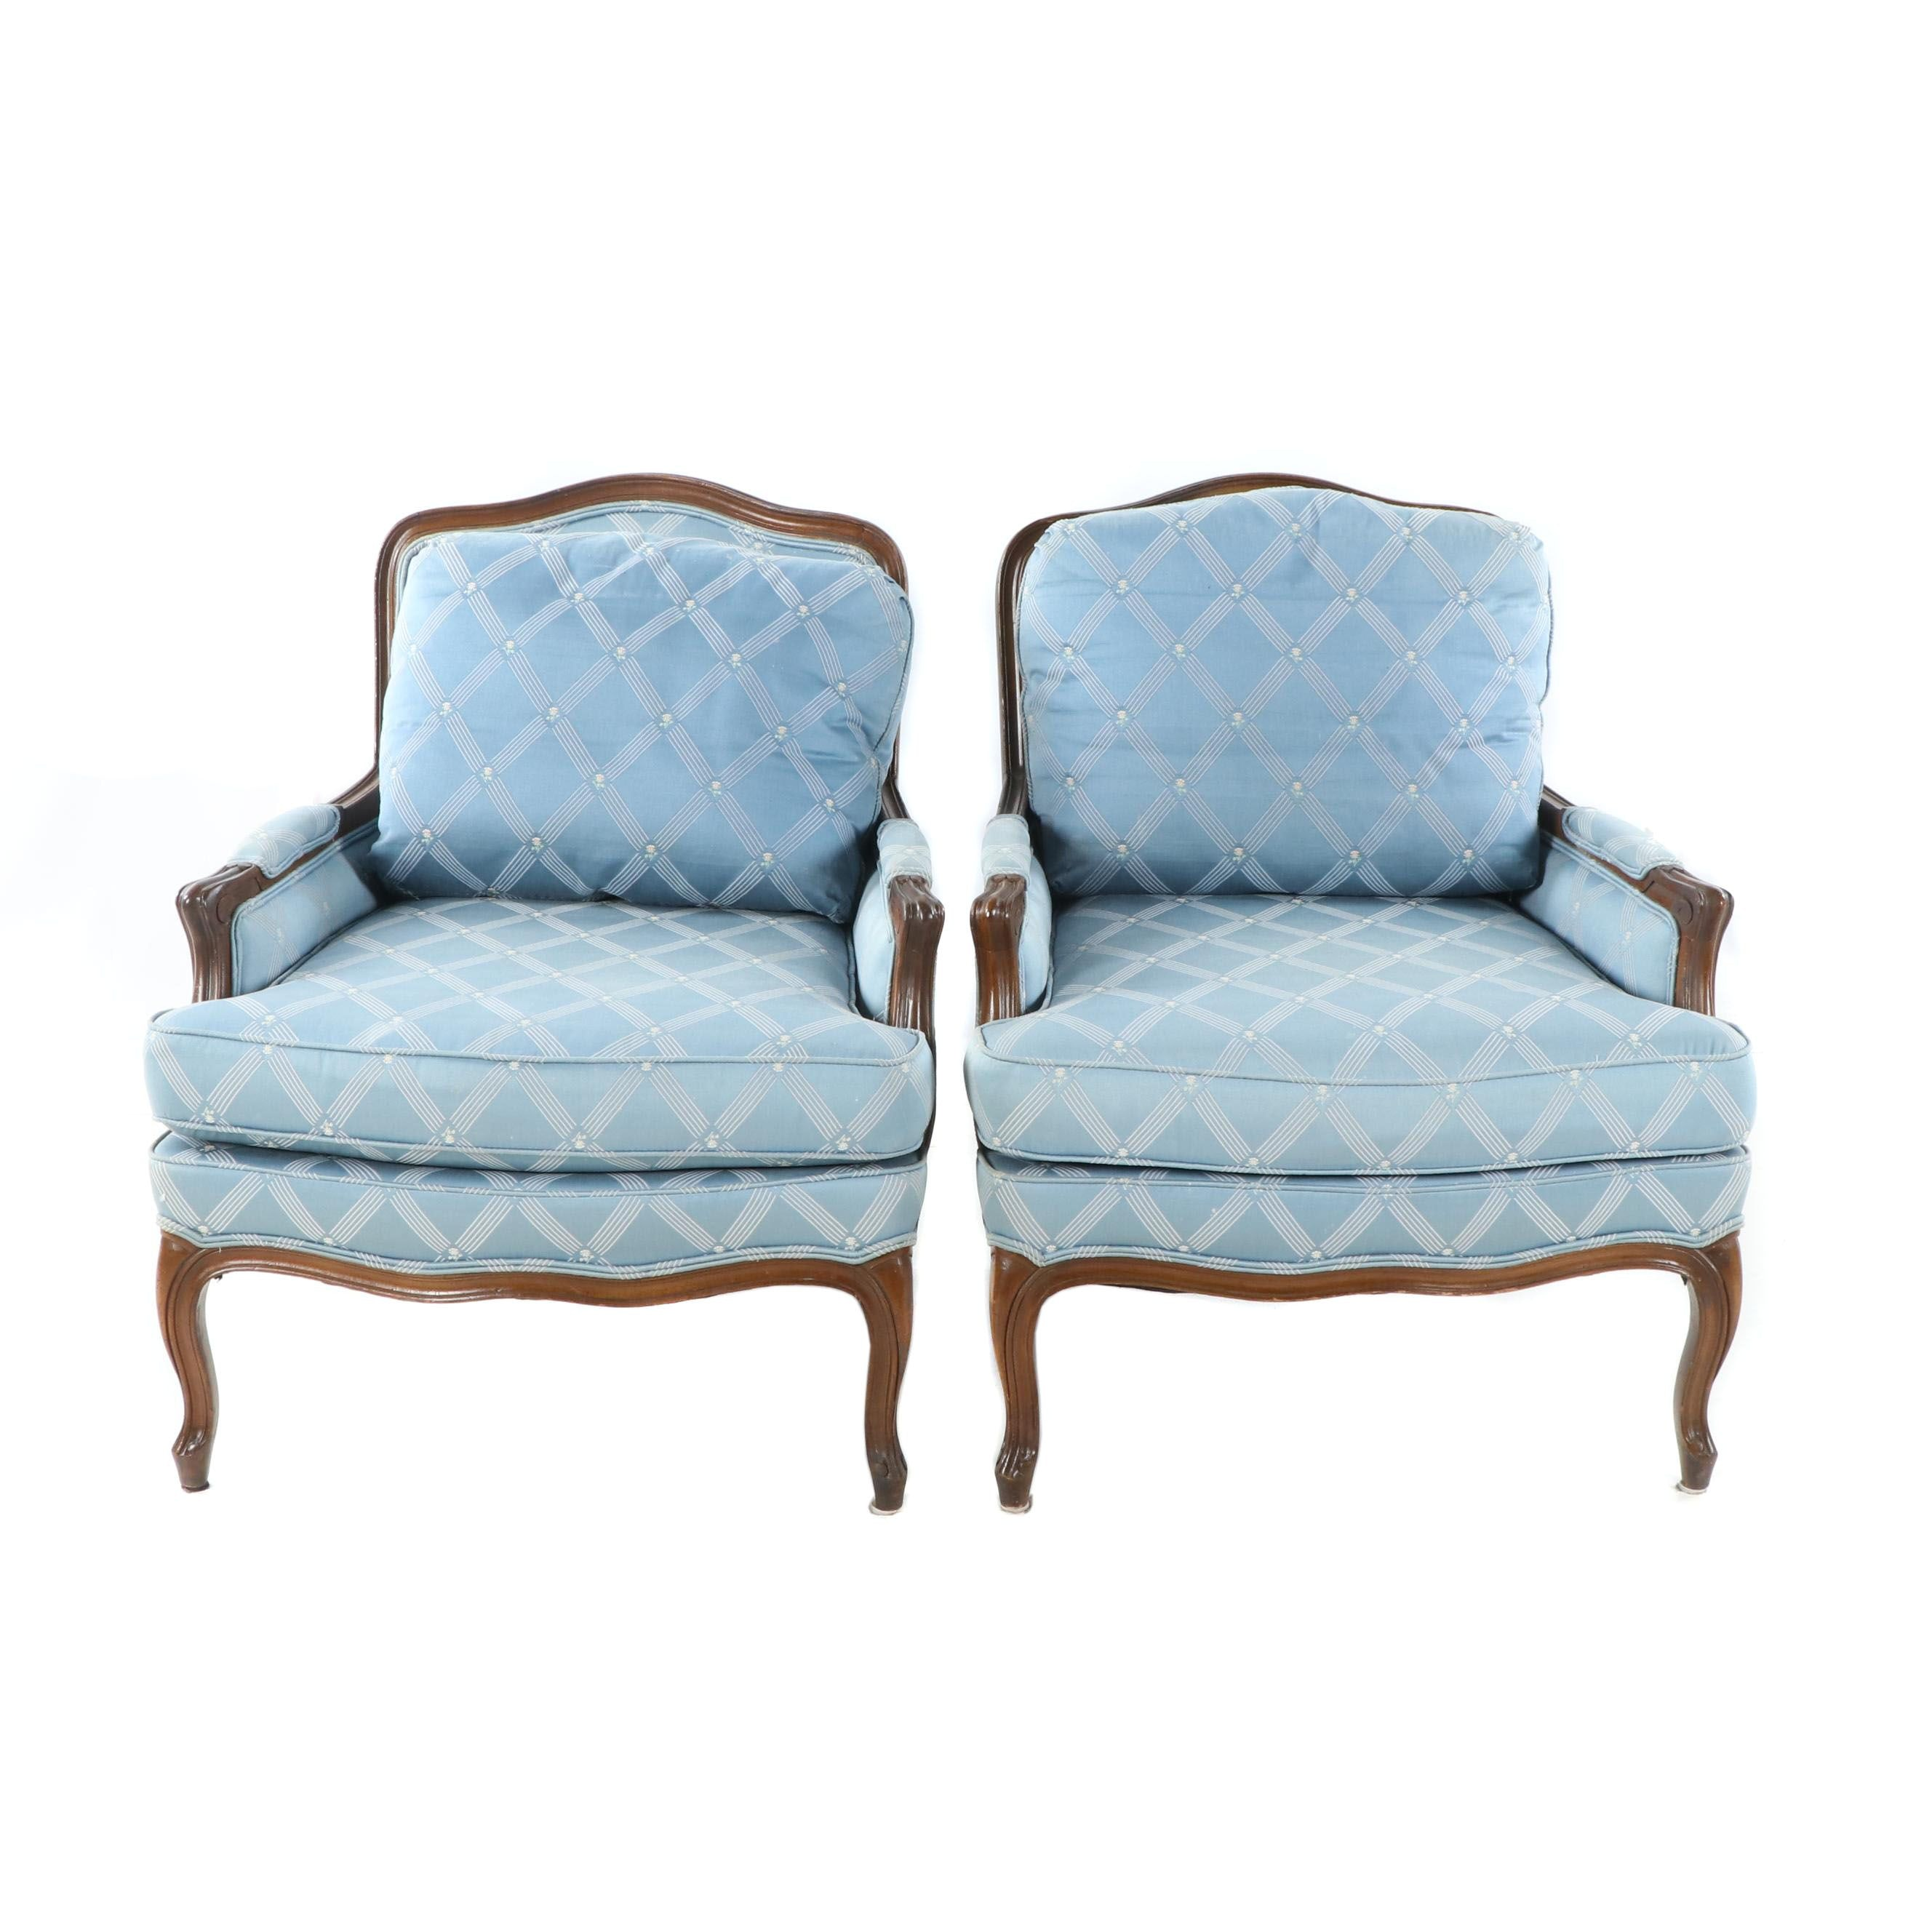 French Provincial Style Upholstered Armchairs by James Sharpe, Late 20th Century